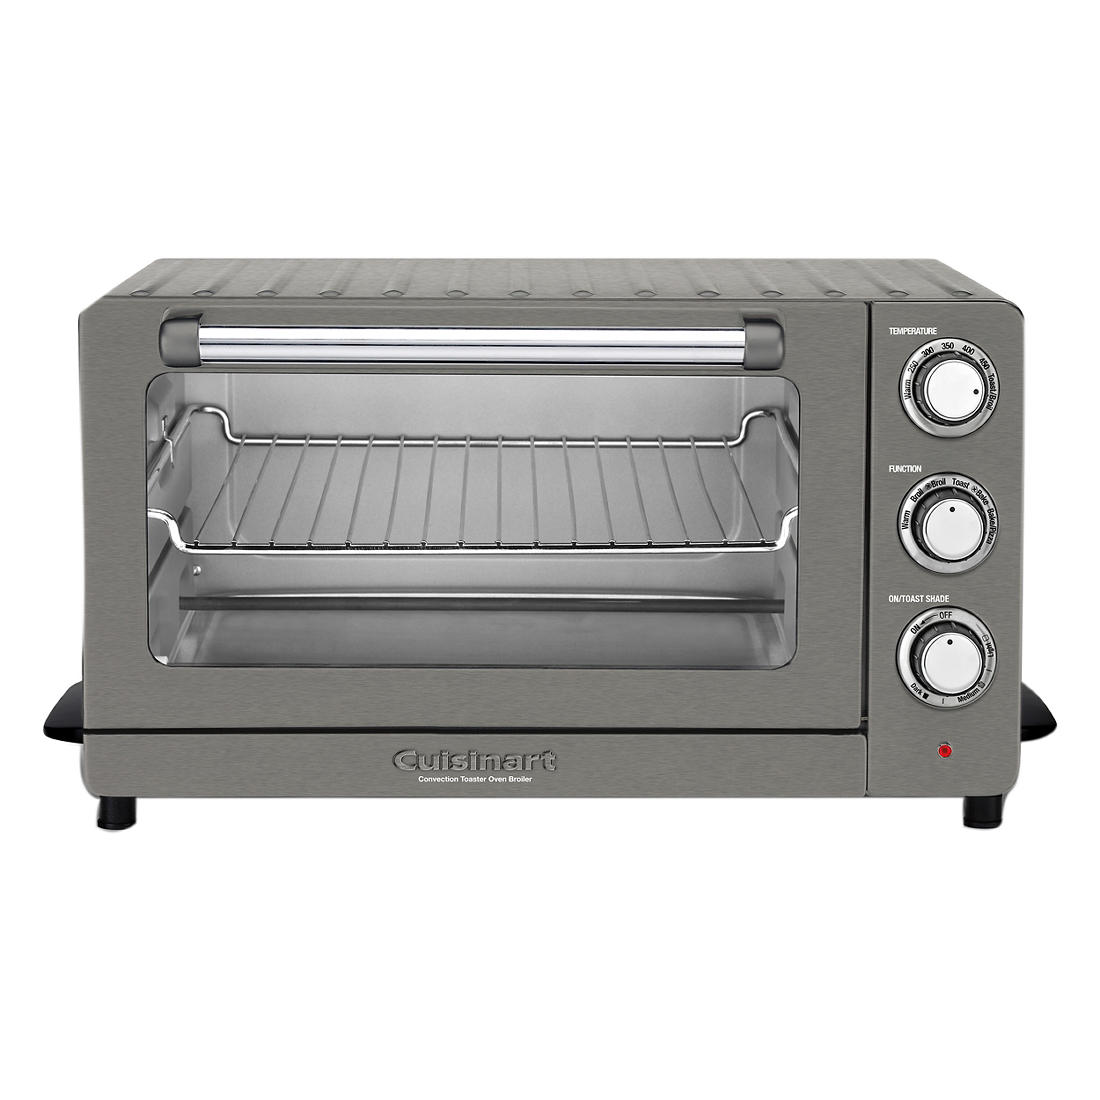 Cuisinart Toaster Oven Broiler with Convection - Black Stainless Steel